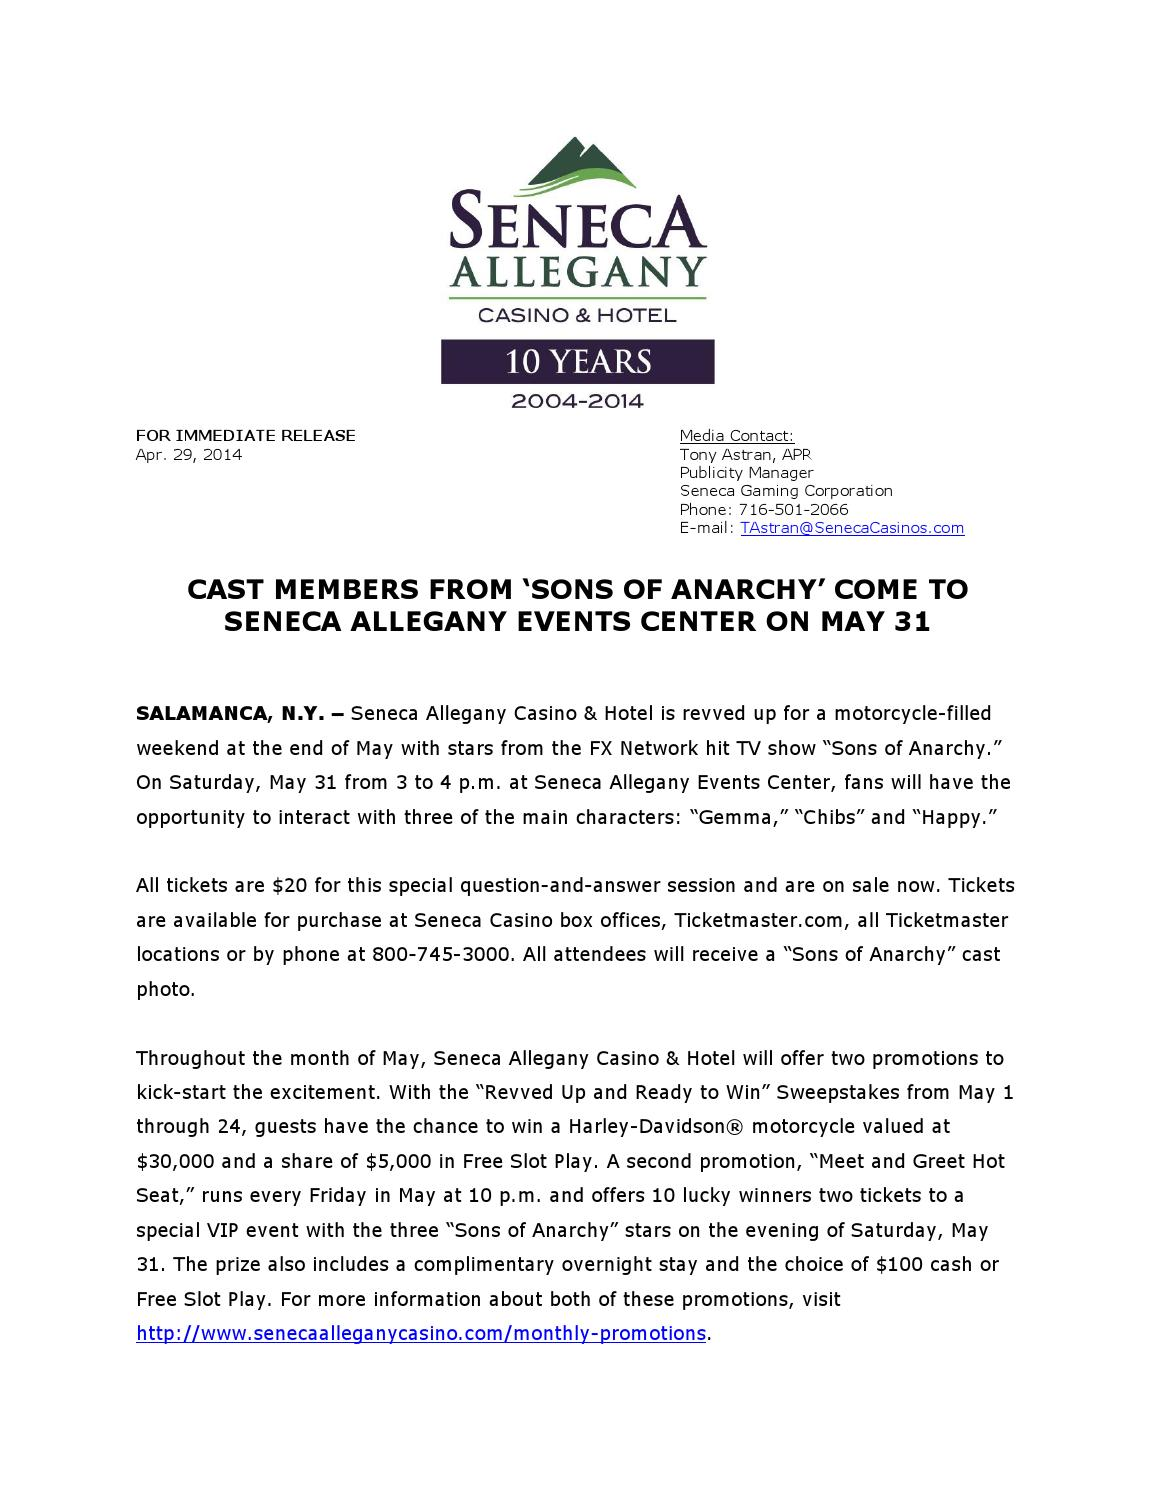 Cast members from sons of anarchy come to seneca allegany events cast members from sons of anarchy come to seneca allegany events center on may 31 by seneca casinos issuu kristyandbryce Choice Image